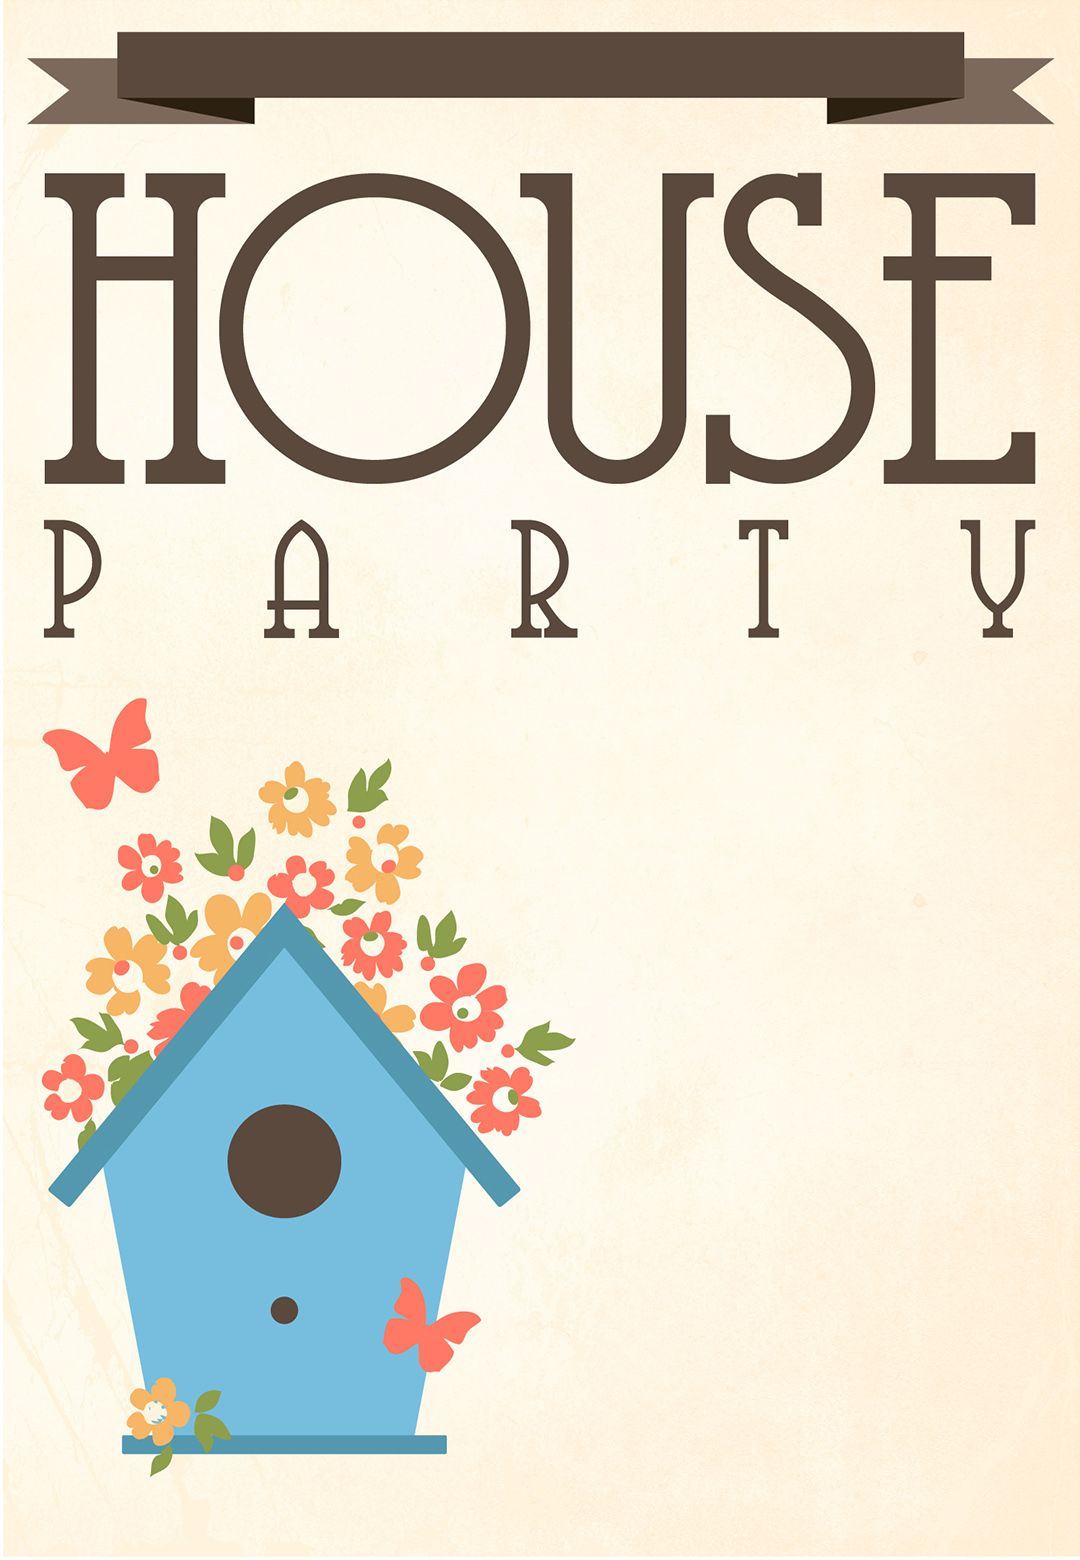 Free Printable House Party Invitation | Fonts/printables/templates - Free Printable Housewarming Invitations Cards